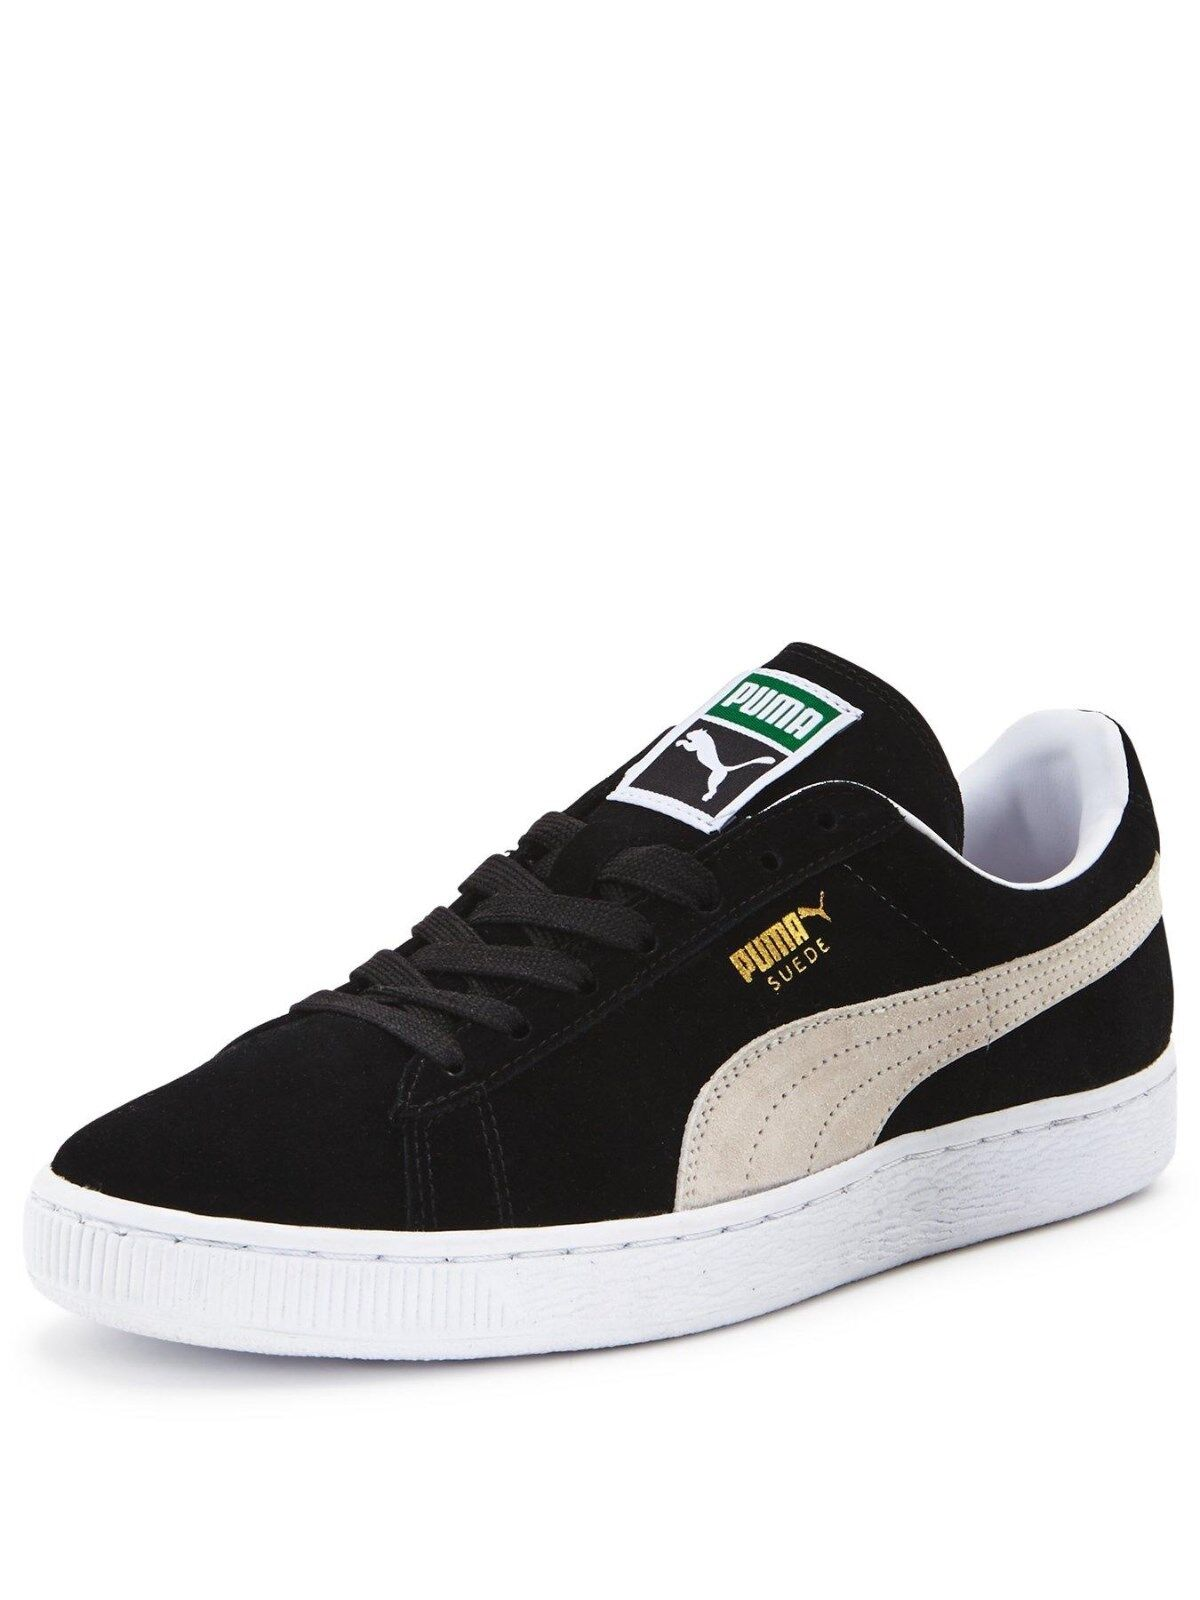 reputable site d42a7 07e39 Puma Suede Classic+ Mens Ladies Unisex Trainers – Black